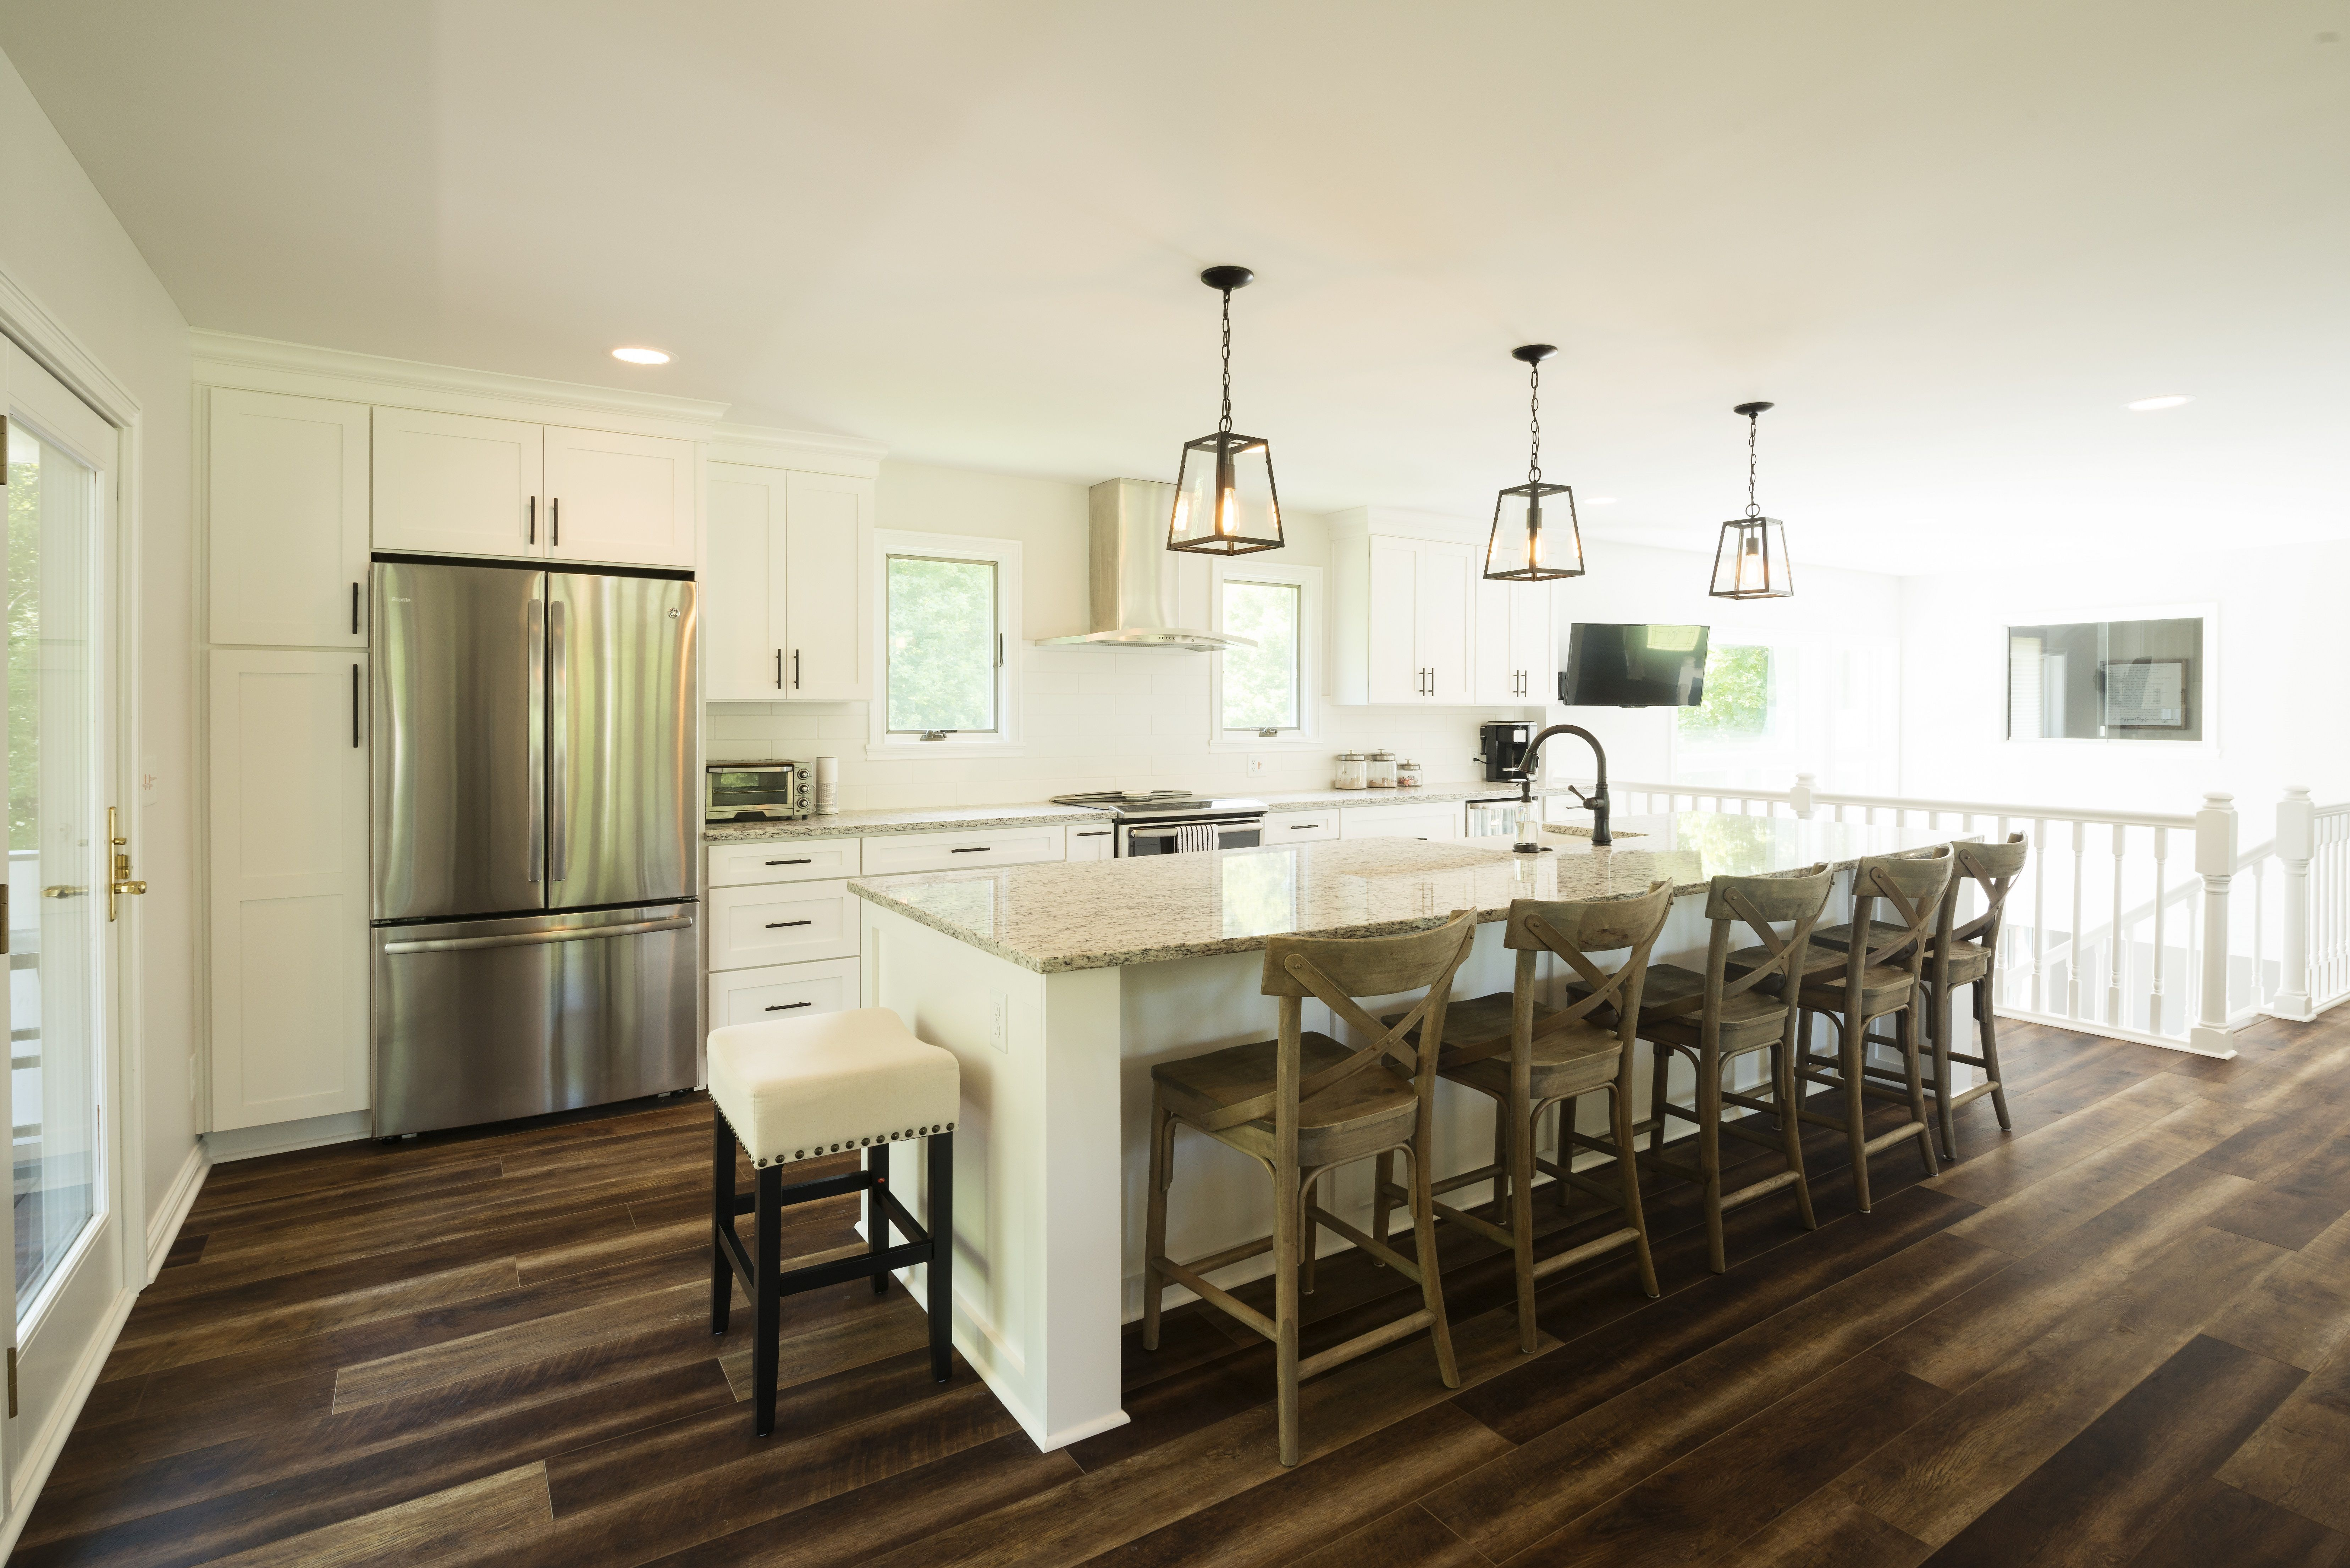 Traditional kitchen remodel in indiana wood floors pendant